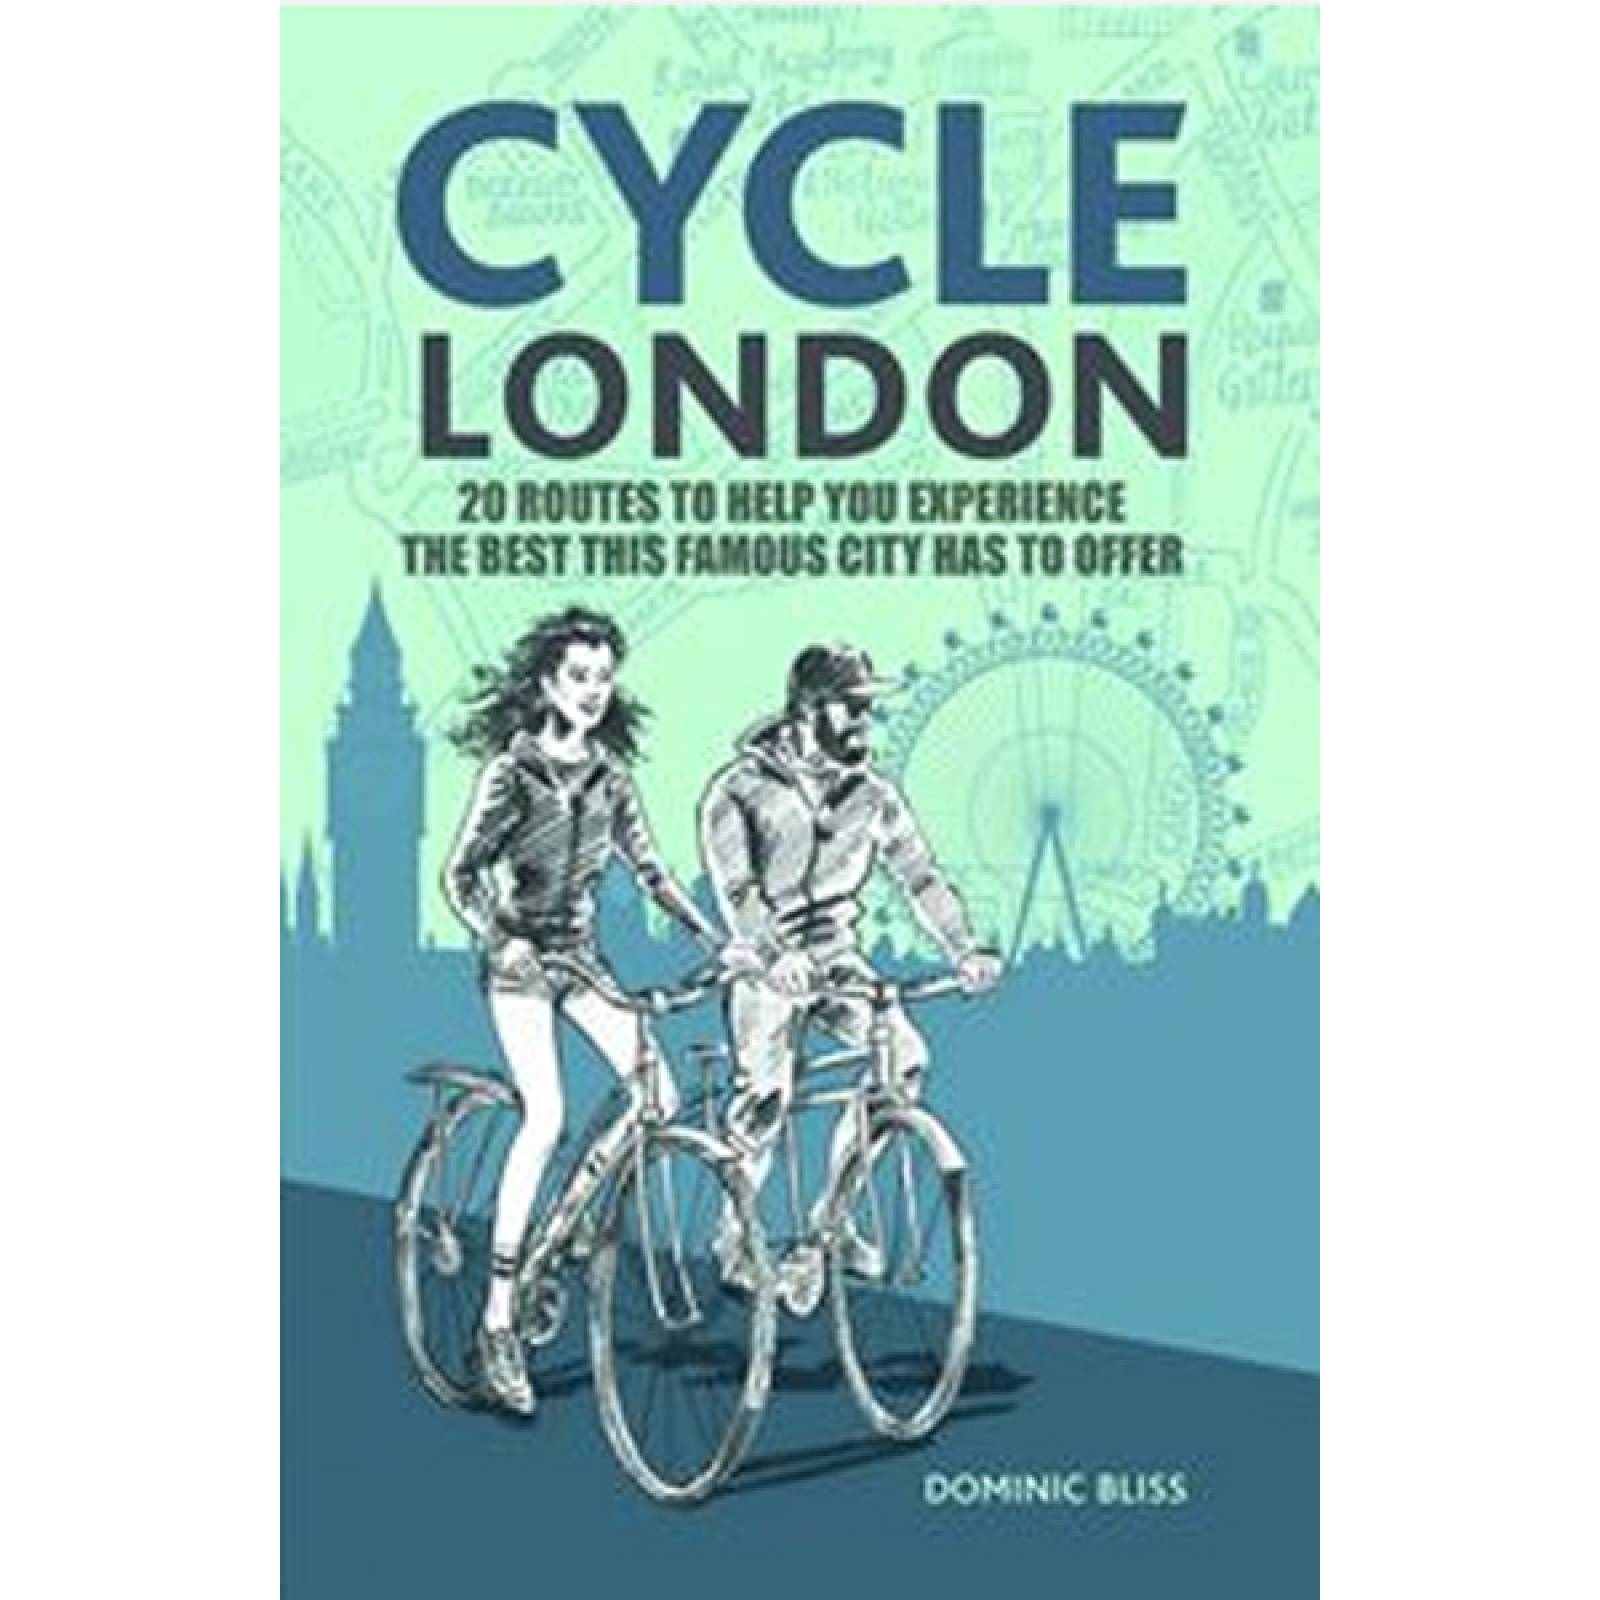 Cycle London Paperback Book